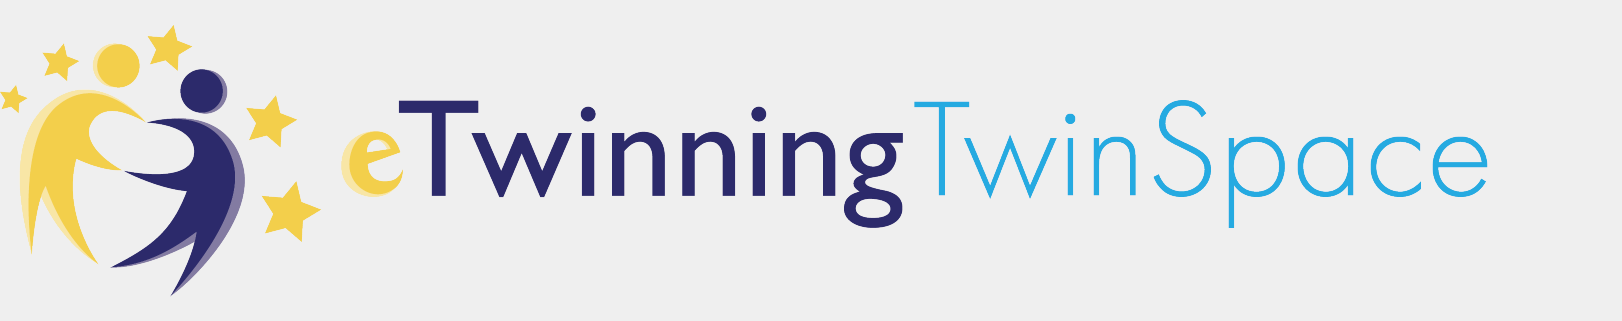 eTwinning Twin Space